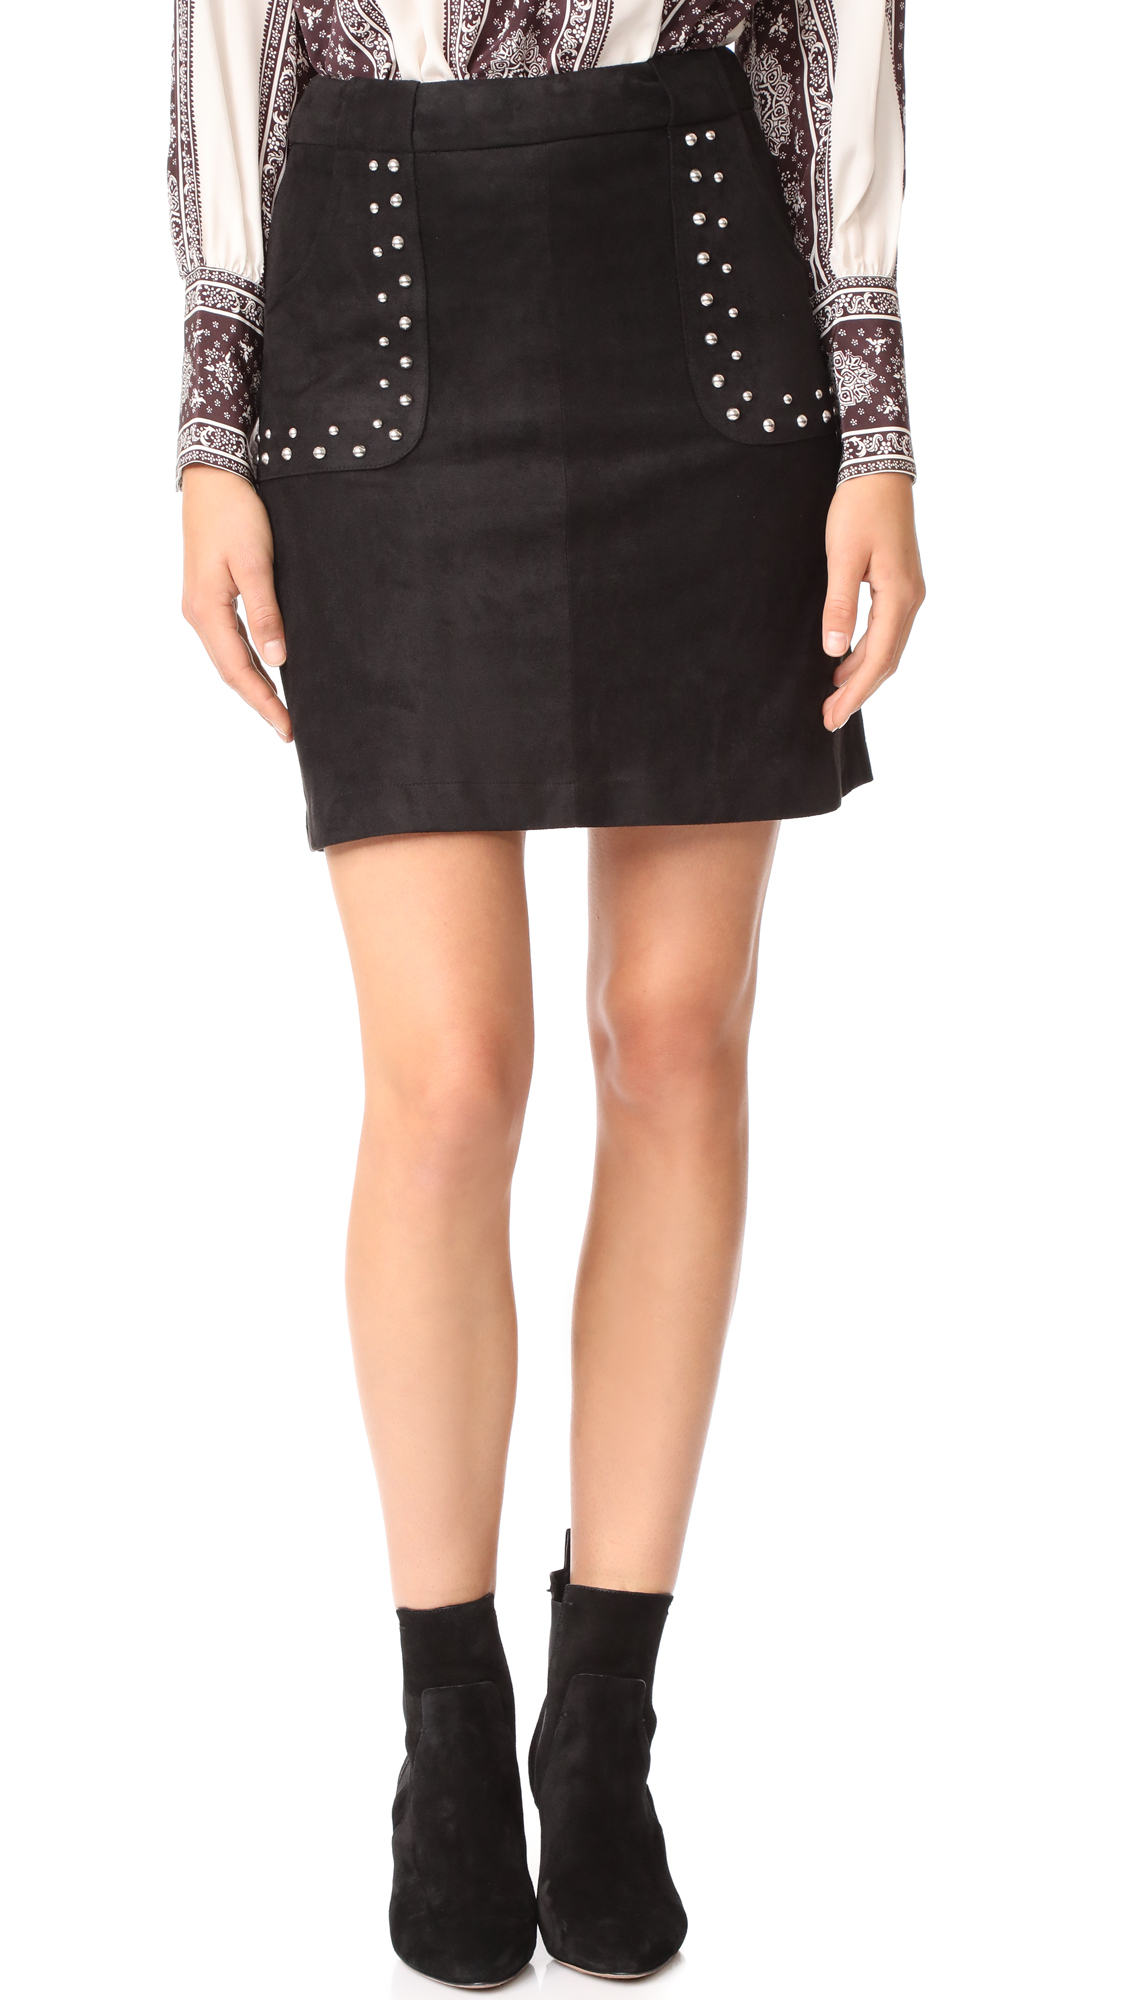 BB Dakota Cain Faux Suede Skirt - Black